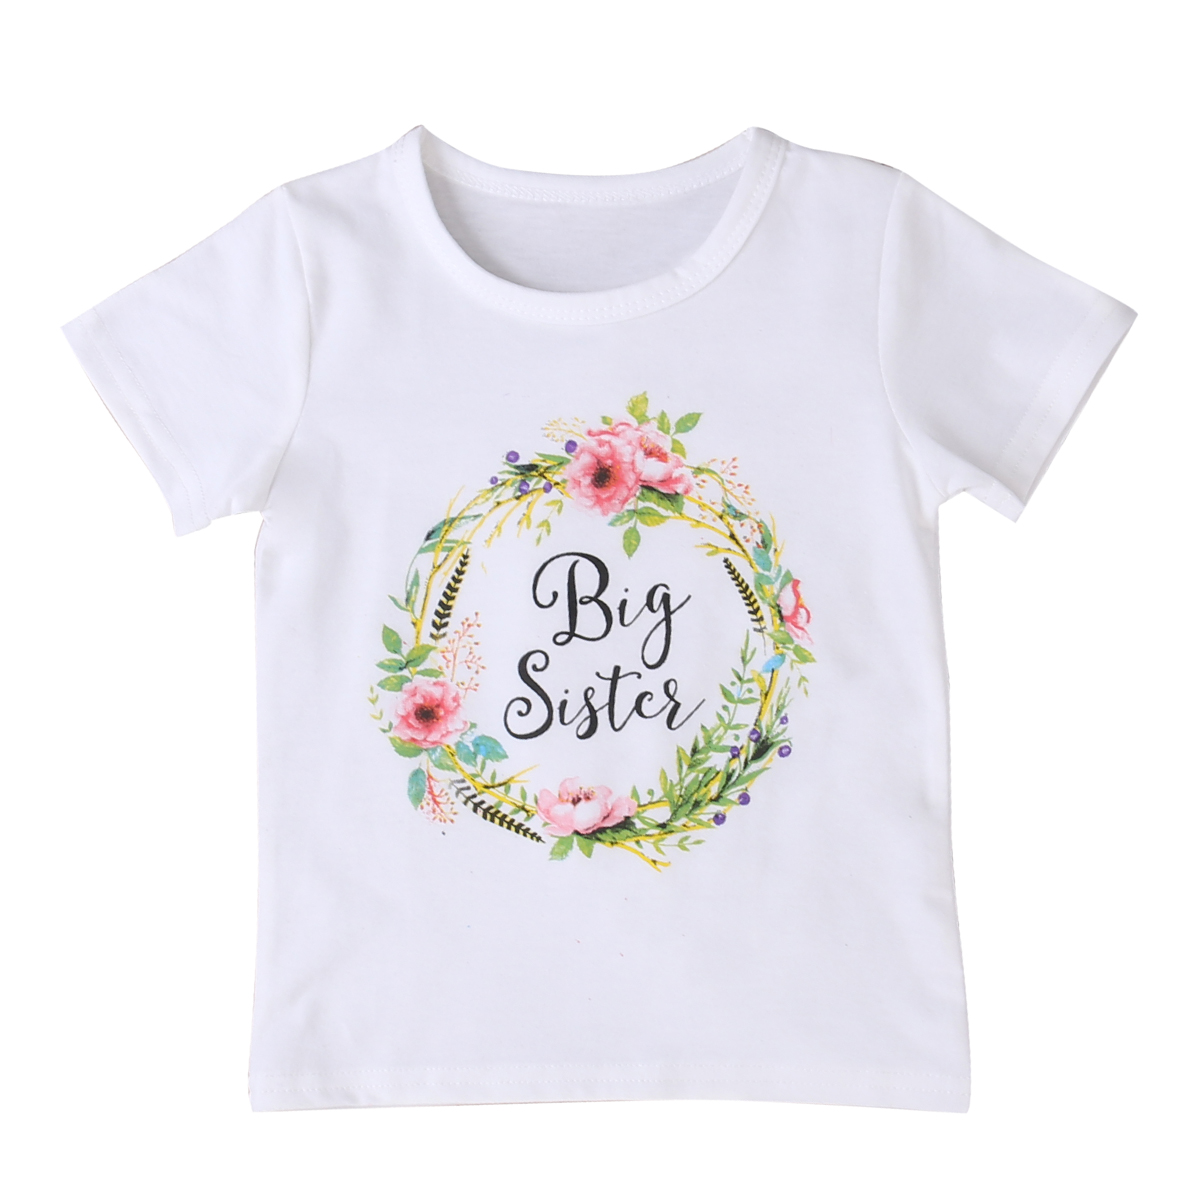 Girls T-Shirts Short Sleeve Flower Outfits T Shirt Baby Kid Girl Clothes Tops Cotton Clothes